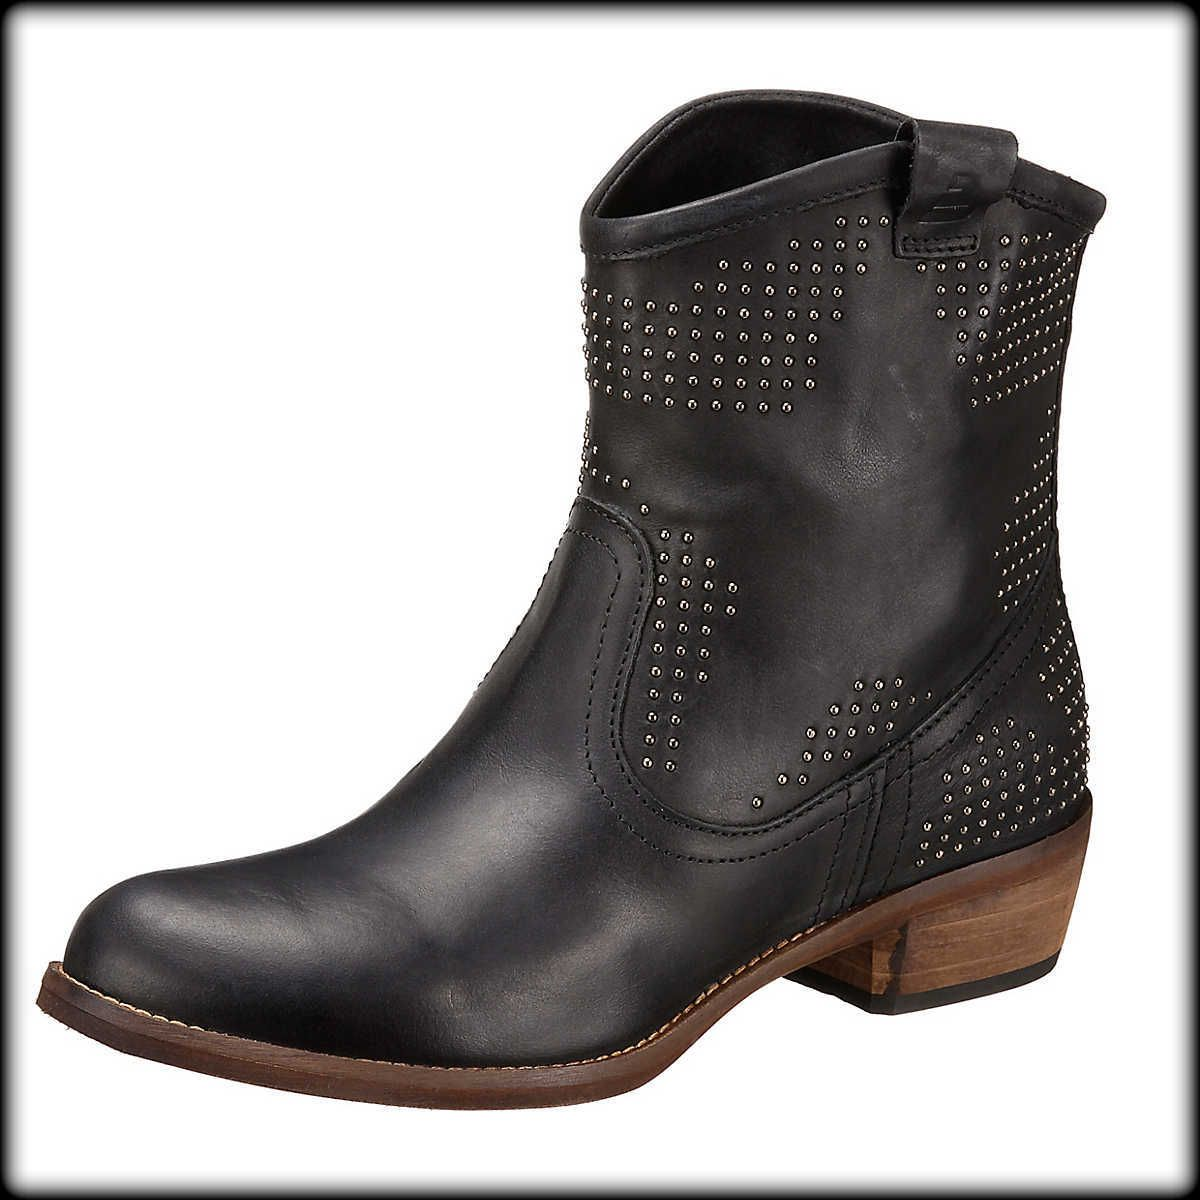 Bullboxer Stiefeletten | Chelsea boots, Fashion, Boots